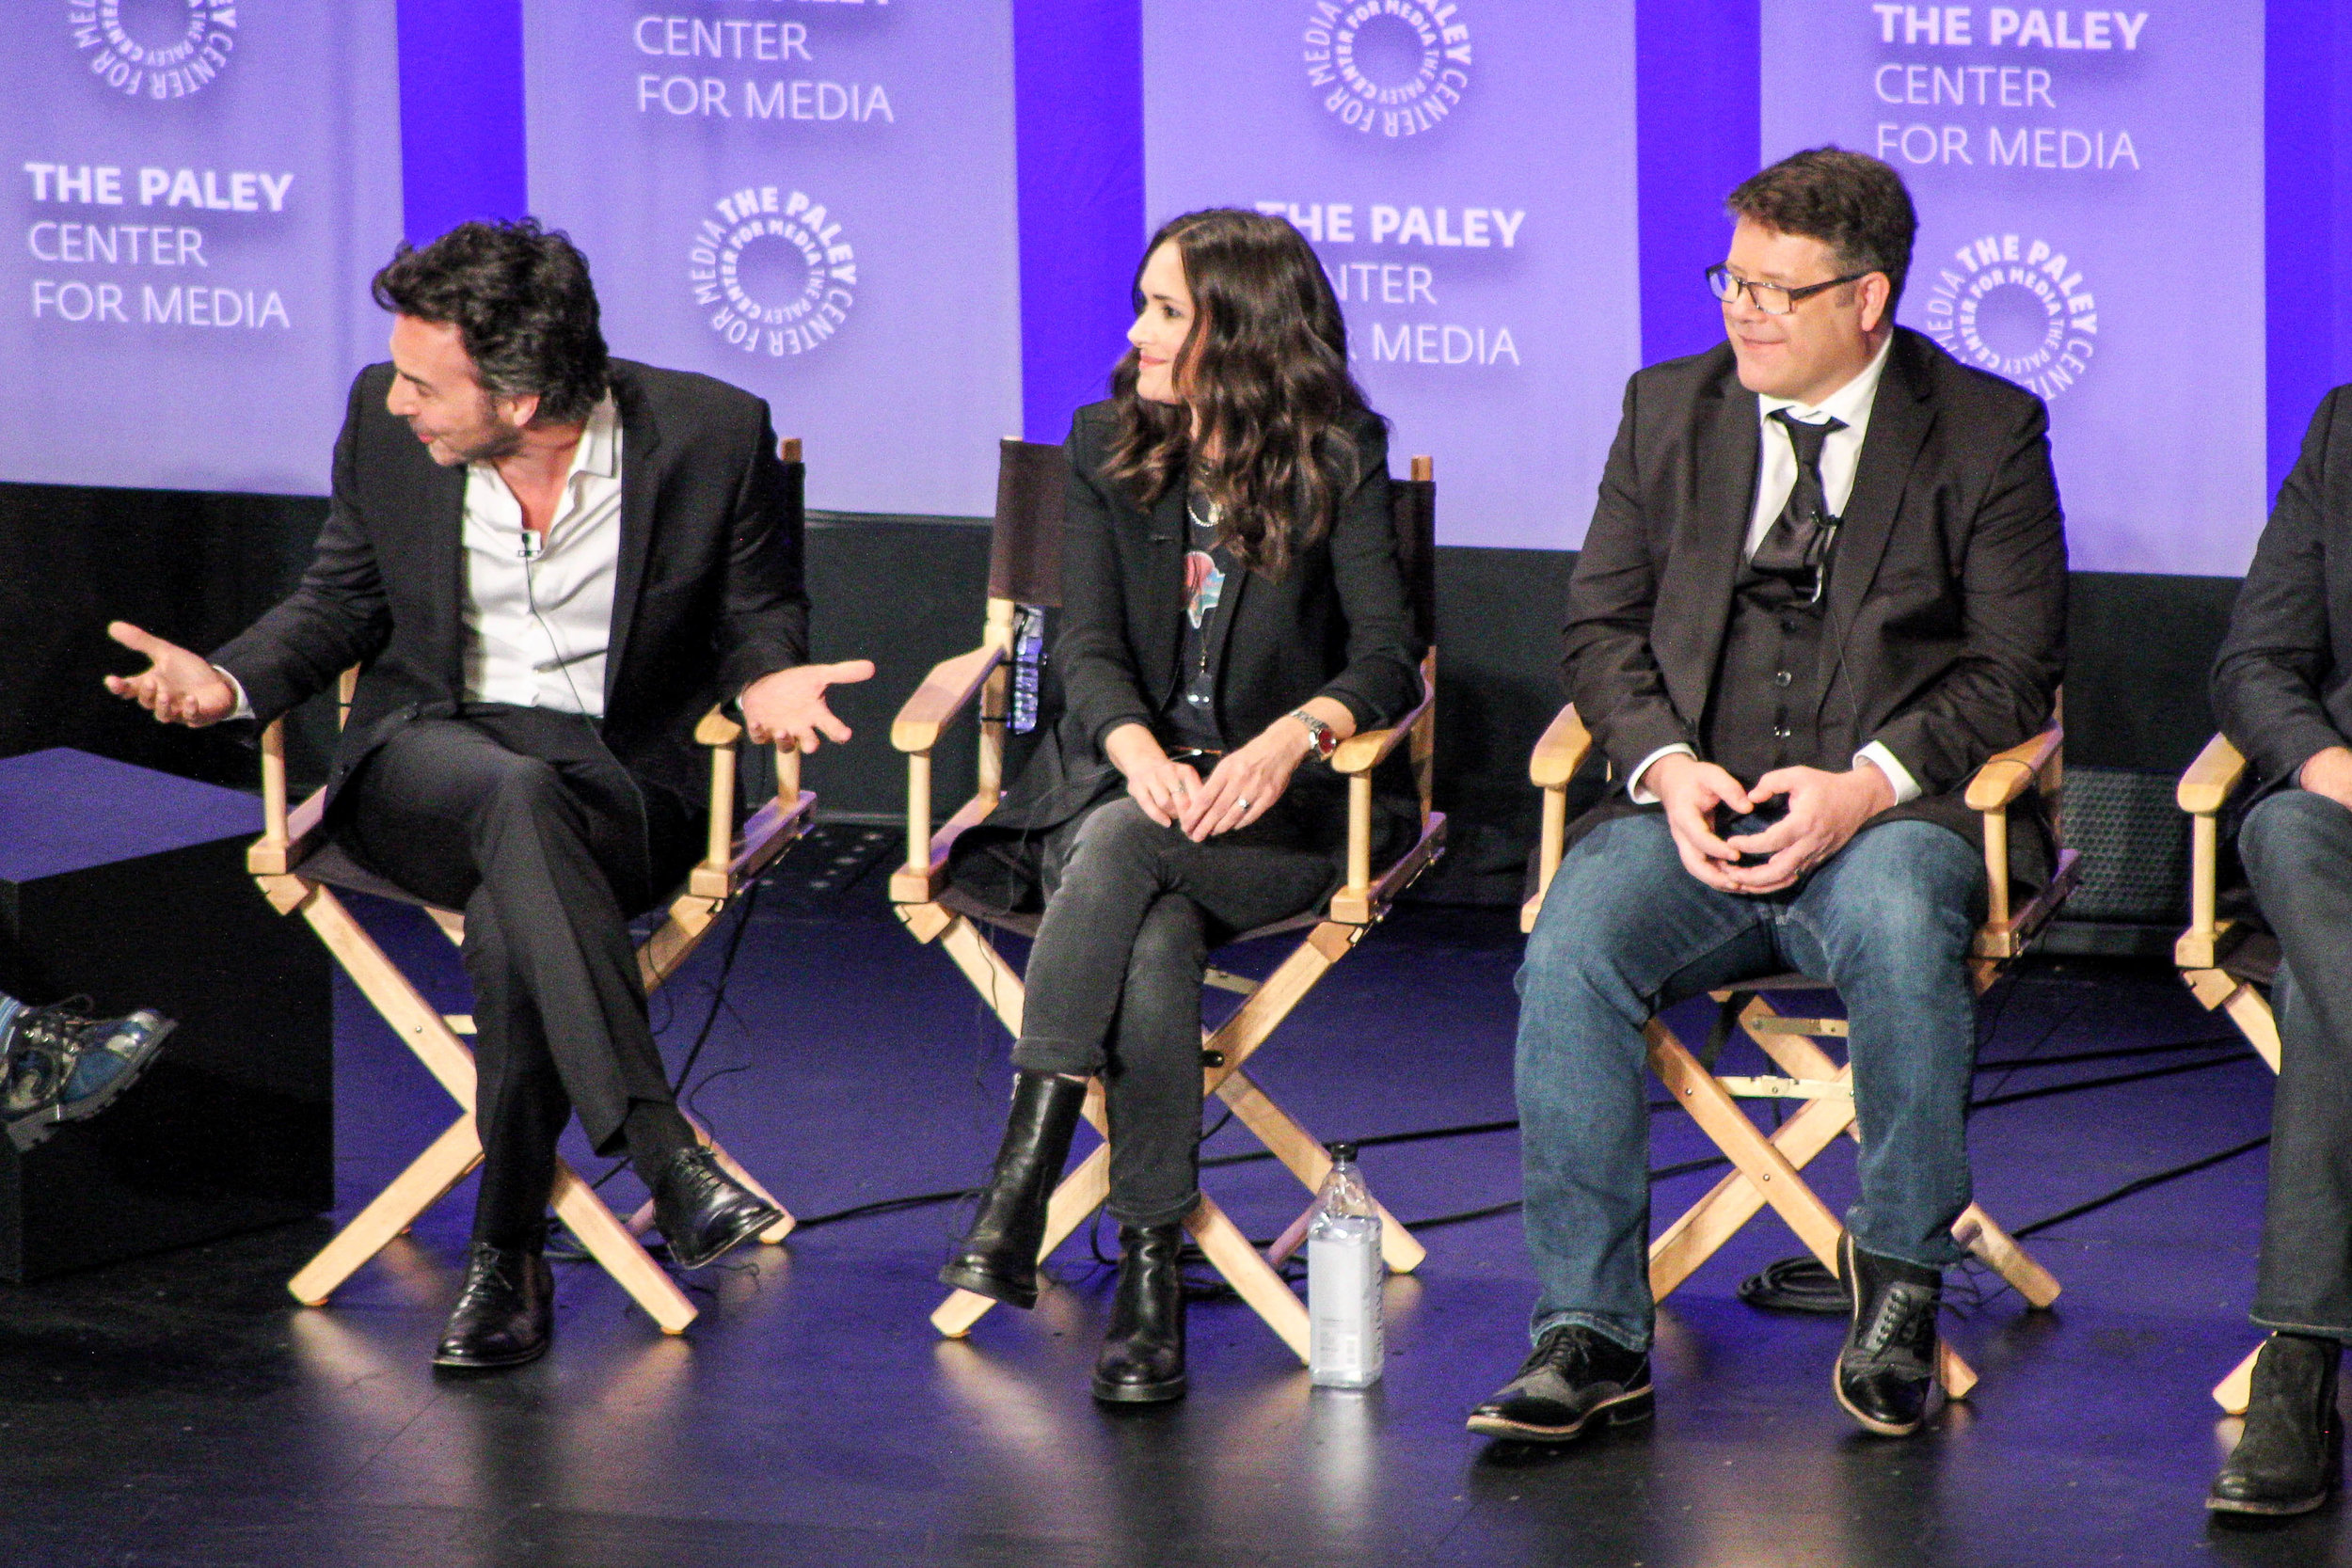 from left to right: executive producer and director Shawn Levy, Winona Ryder (Joyce Byers), and Sean Astin (Bob Newby)